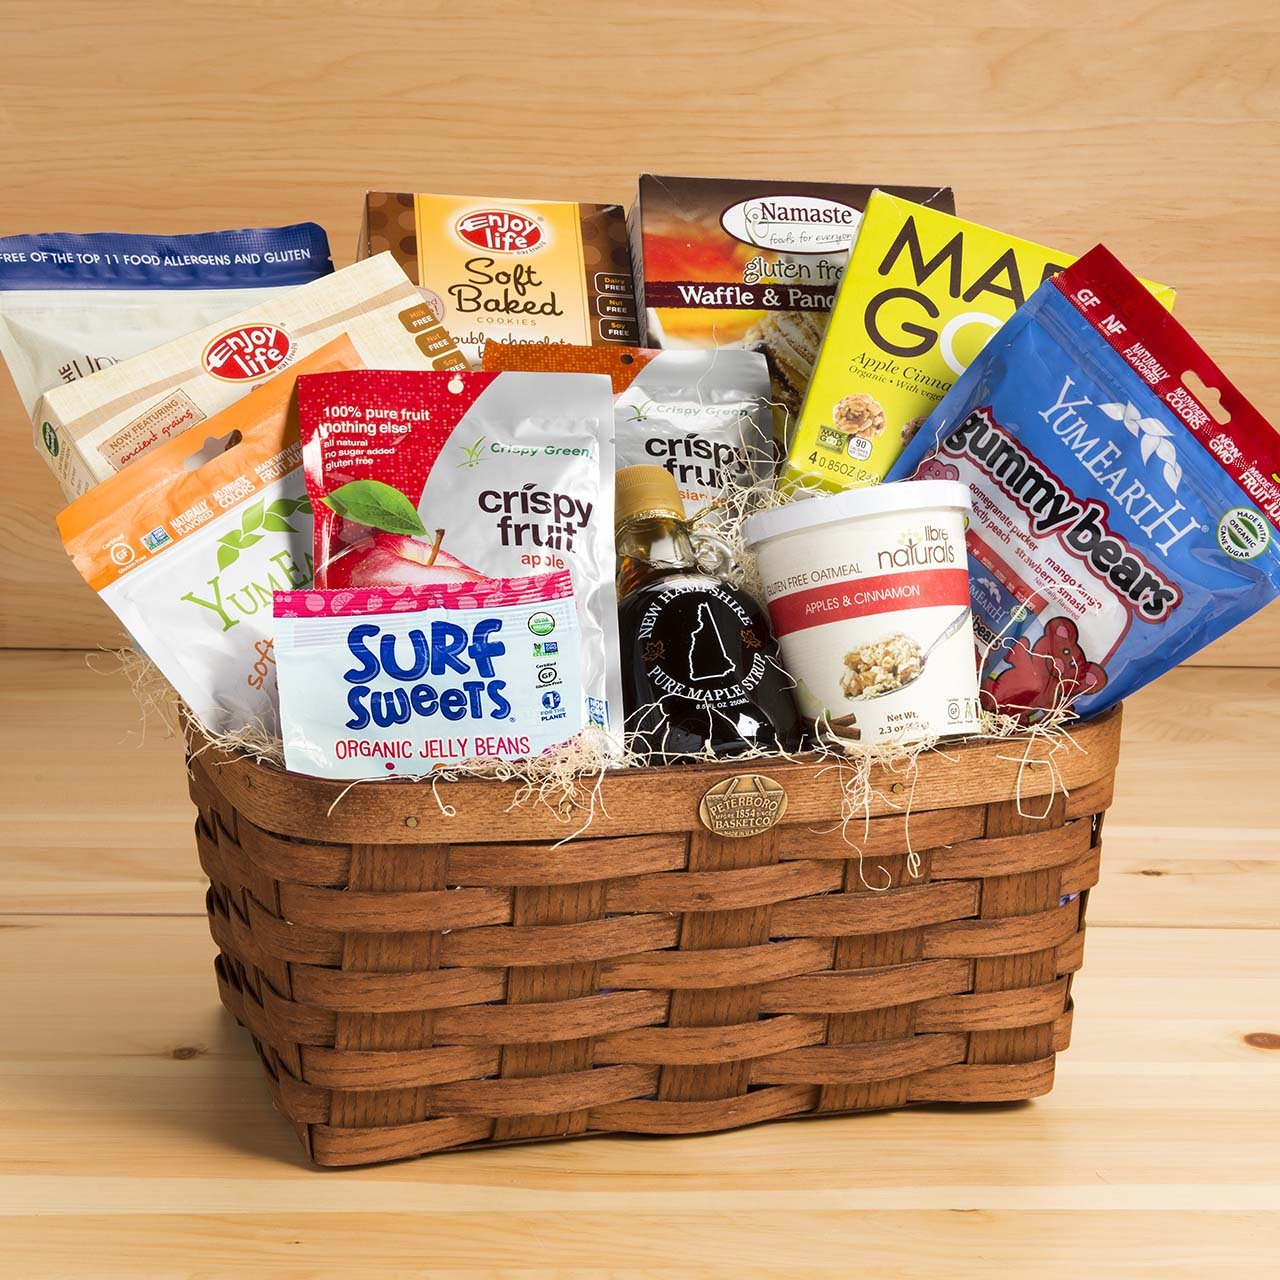 Allergy free gourmet gift basket free from 8 common allergens allergy free gourmet gift basket free from 8 common allergens amazon grocery gourmet food negle Choice Image